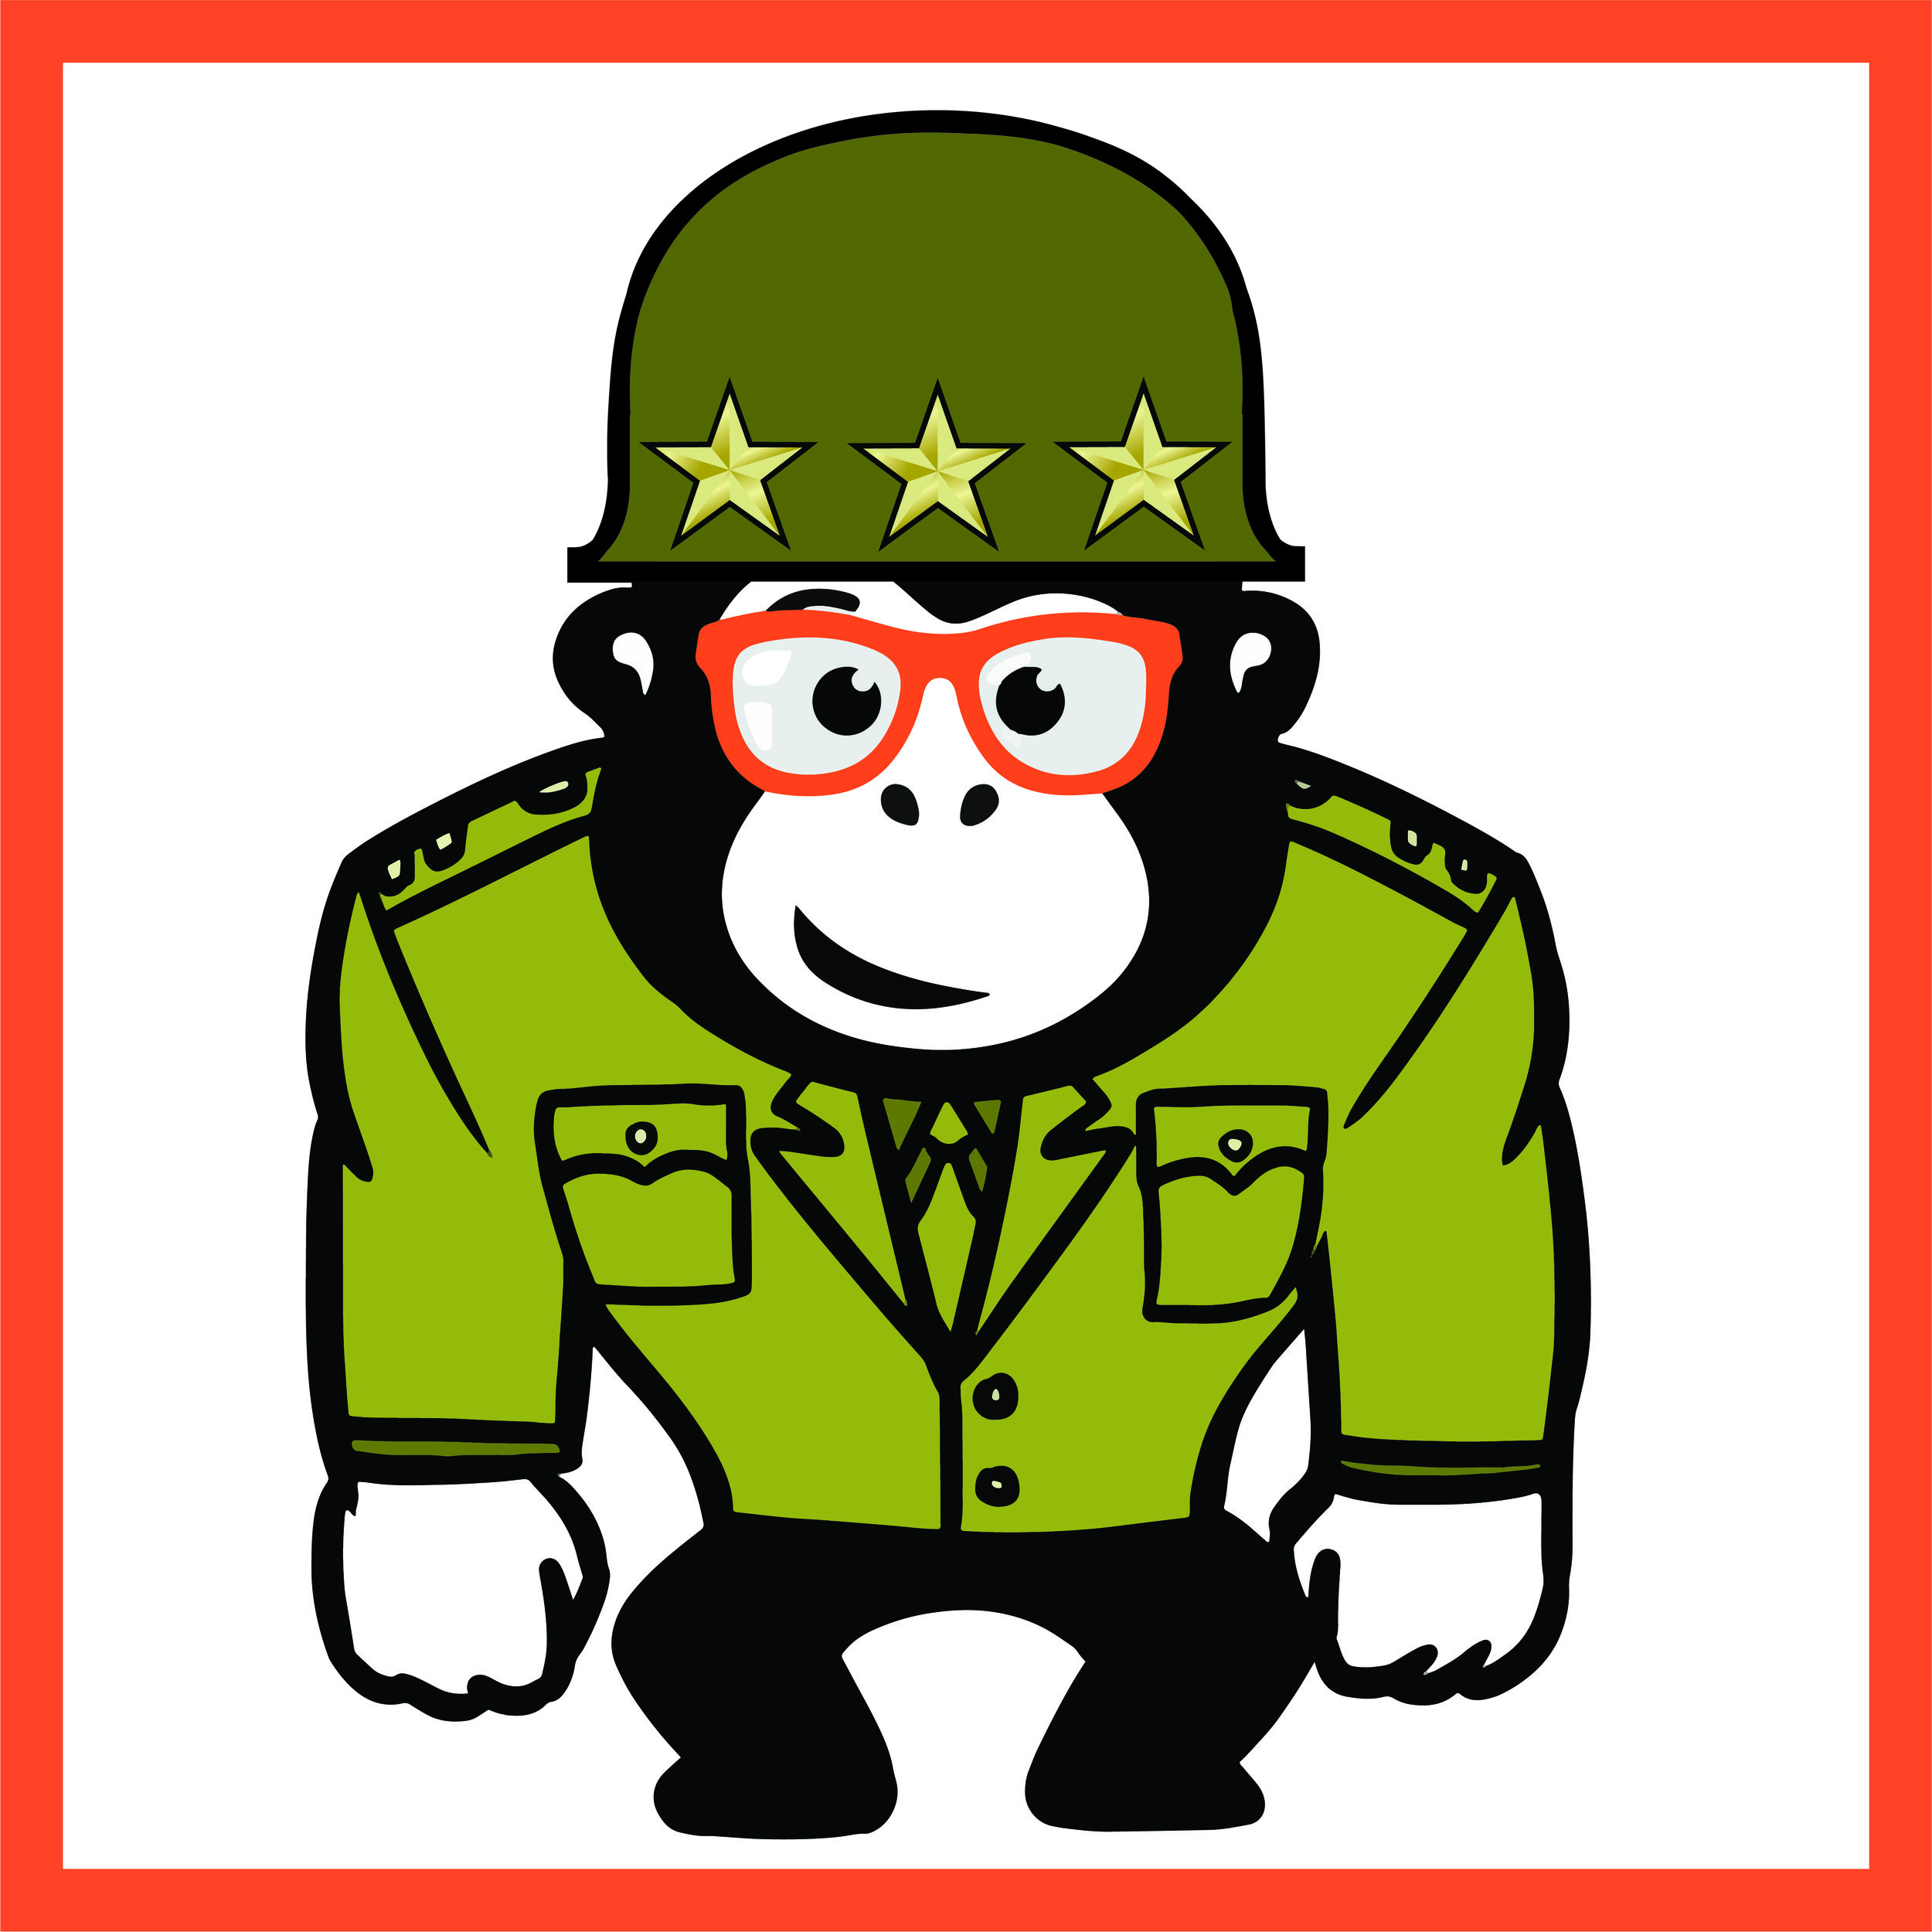 Ka-Puka-military-bunker-Ape-Maui-escape-rooms.jpg